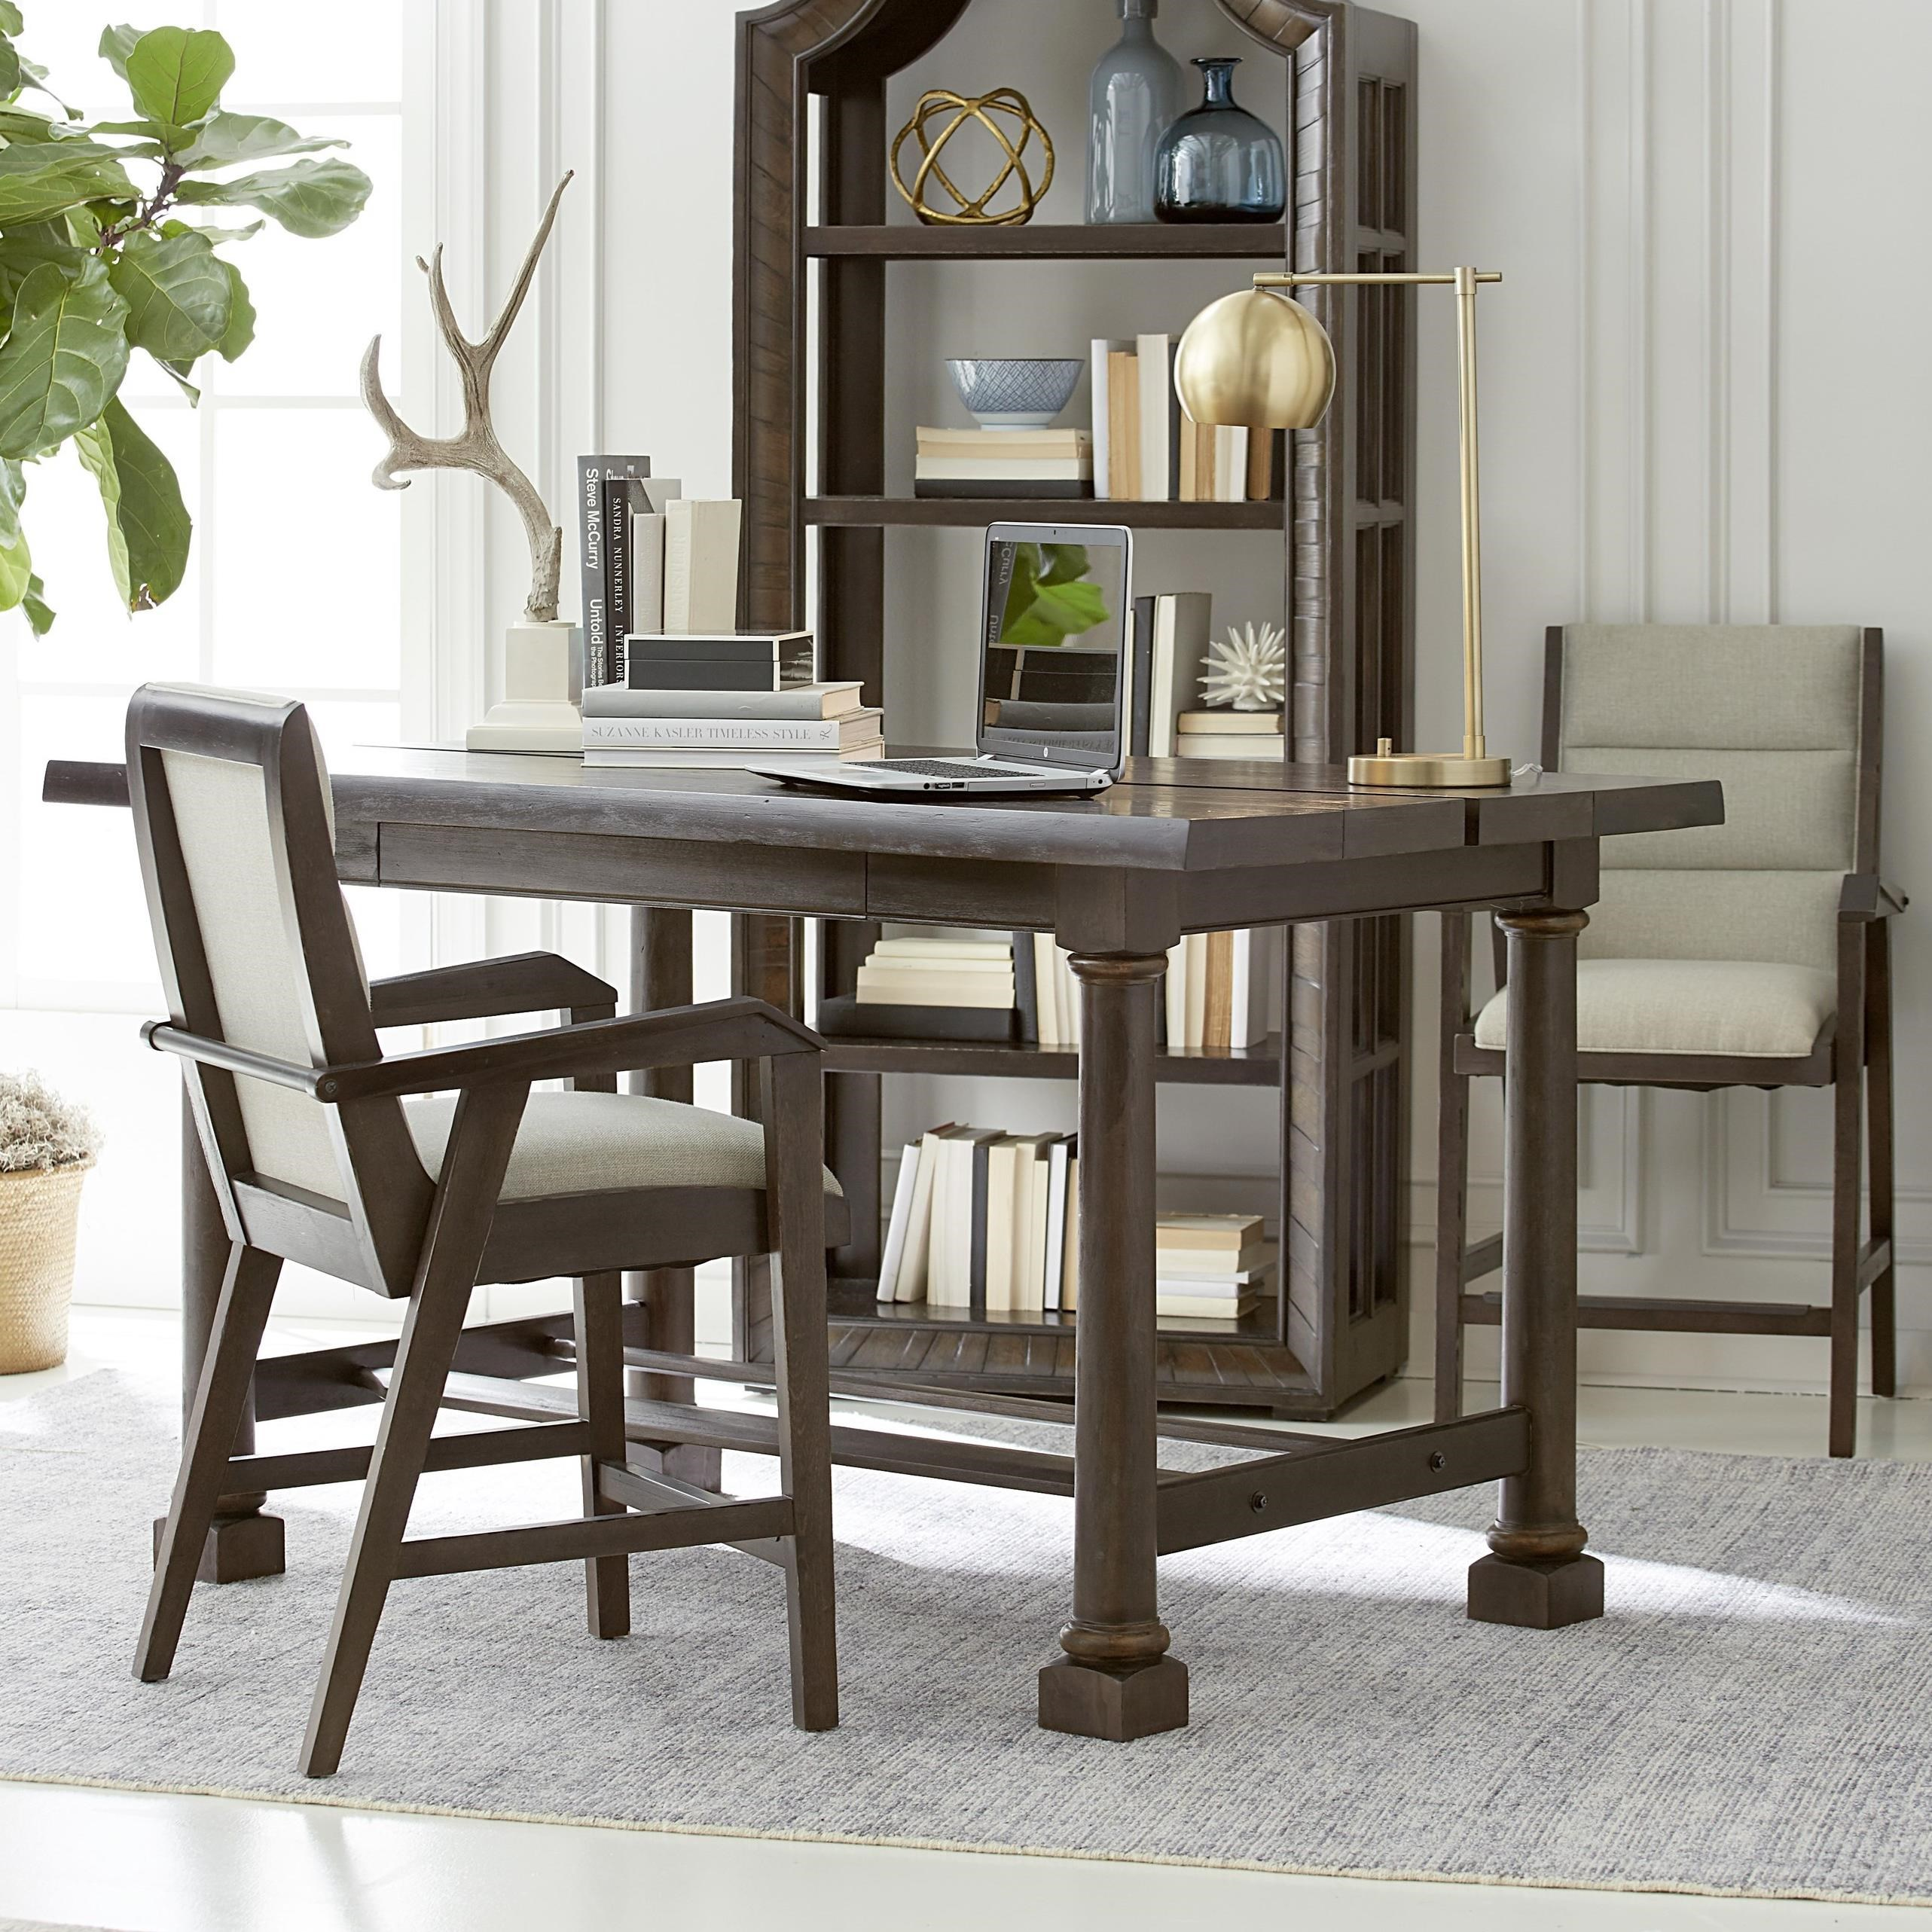 American Chapter 3-Piece Live Edge Activity Table Set by A.R.T. Furniture Inc at Home Collections Furniture